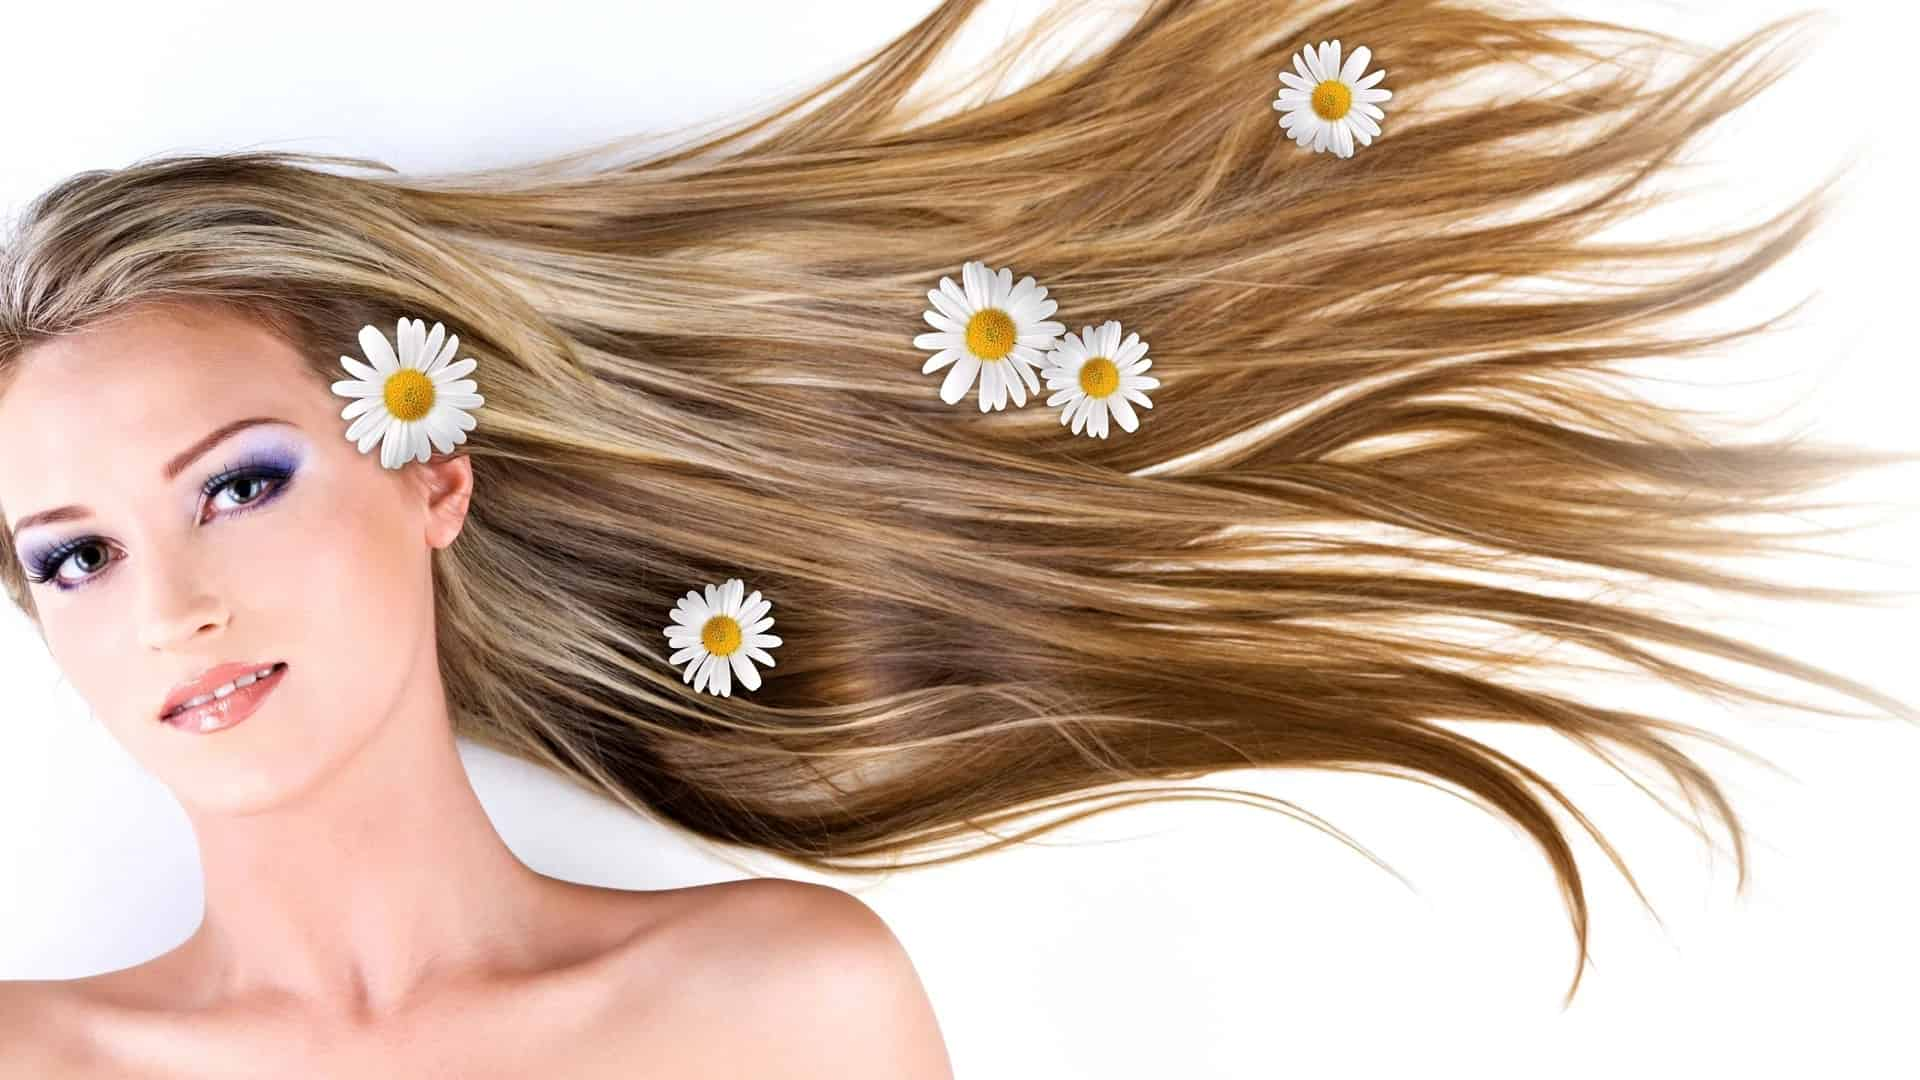 Hair Care Tips and Hacks That Will Make Your Life So Much Easier